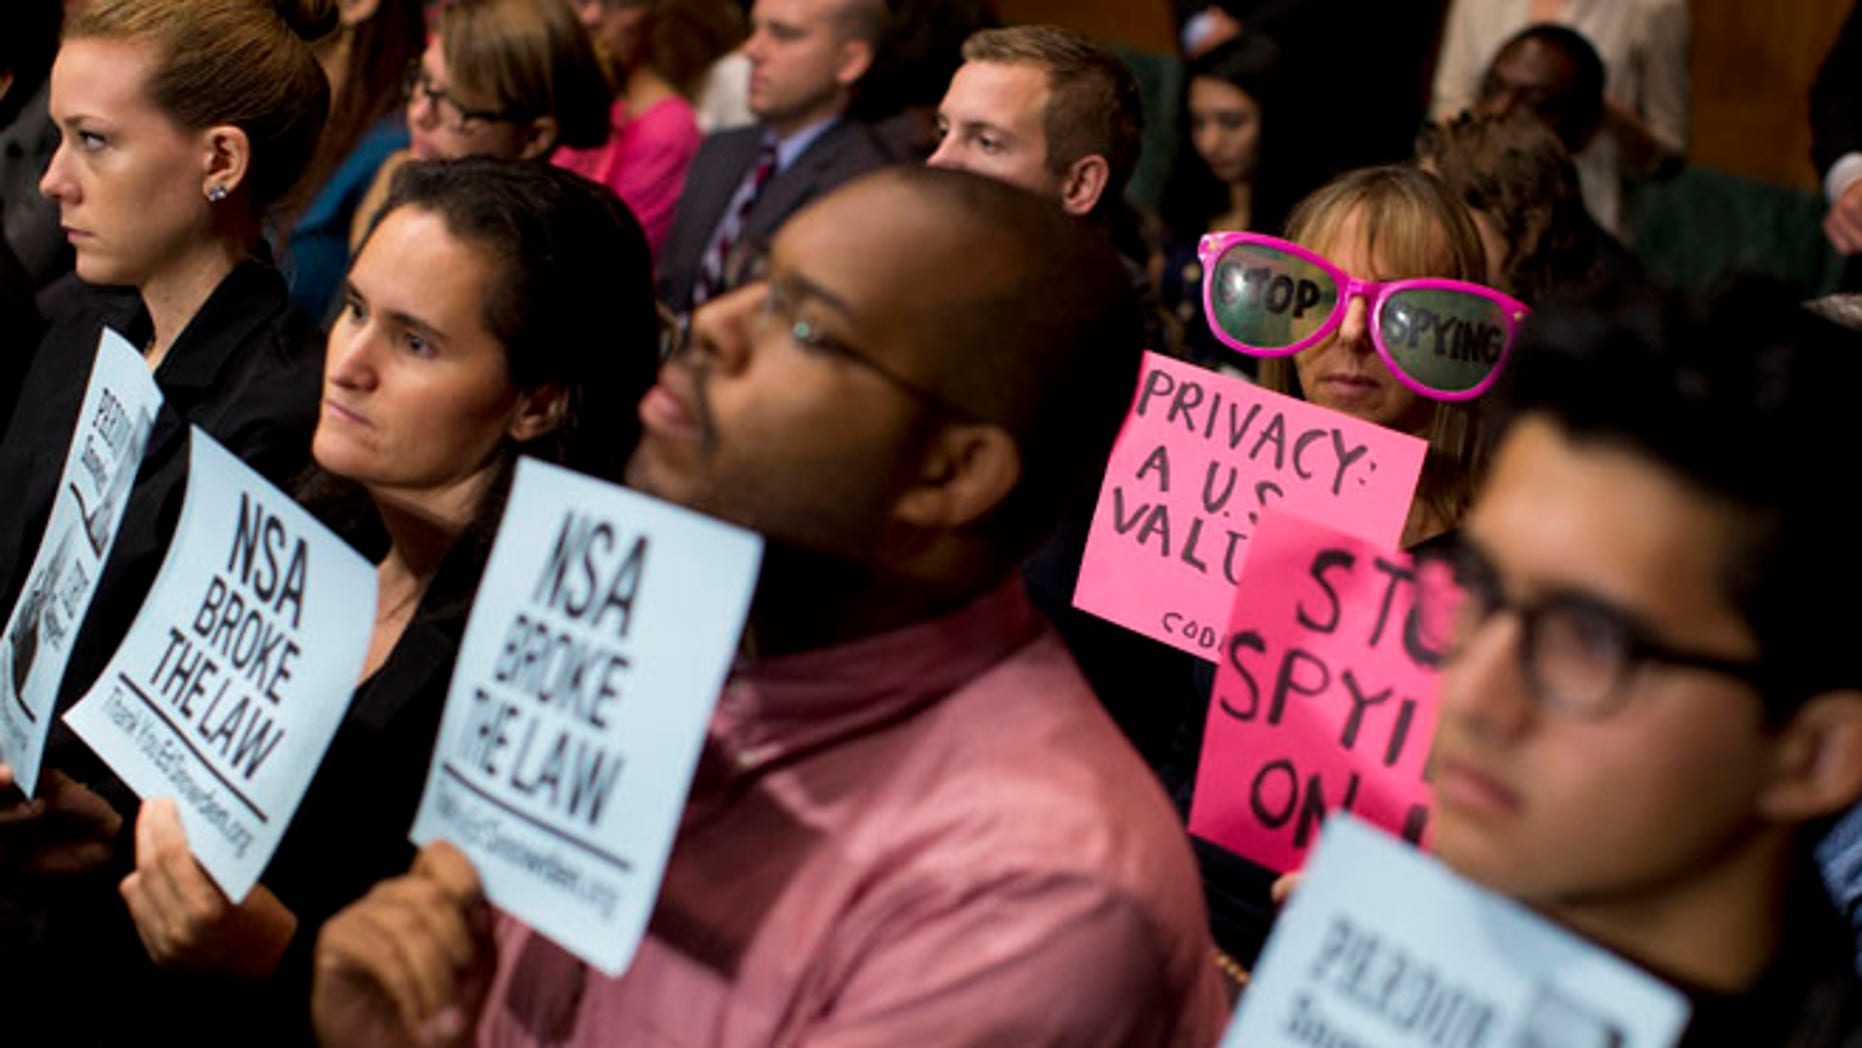 FILE: Oct. 2, 2013: Protestors hold signs, and CodePink founder Medea Benjamin wears oversized sunglasses during a Senate hearing on the Foreign Intelligence Surveillance Act.